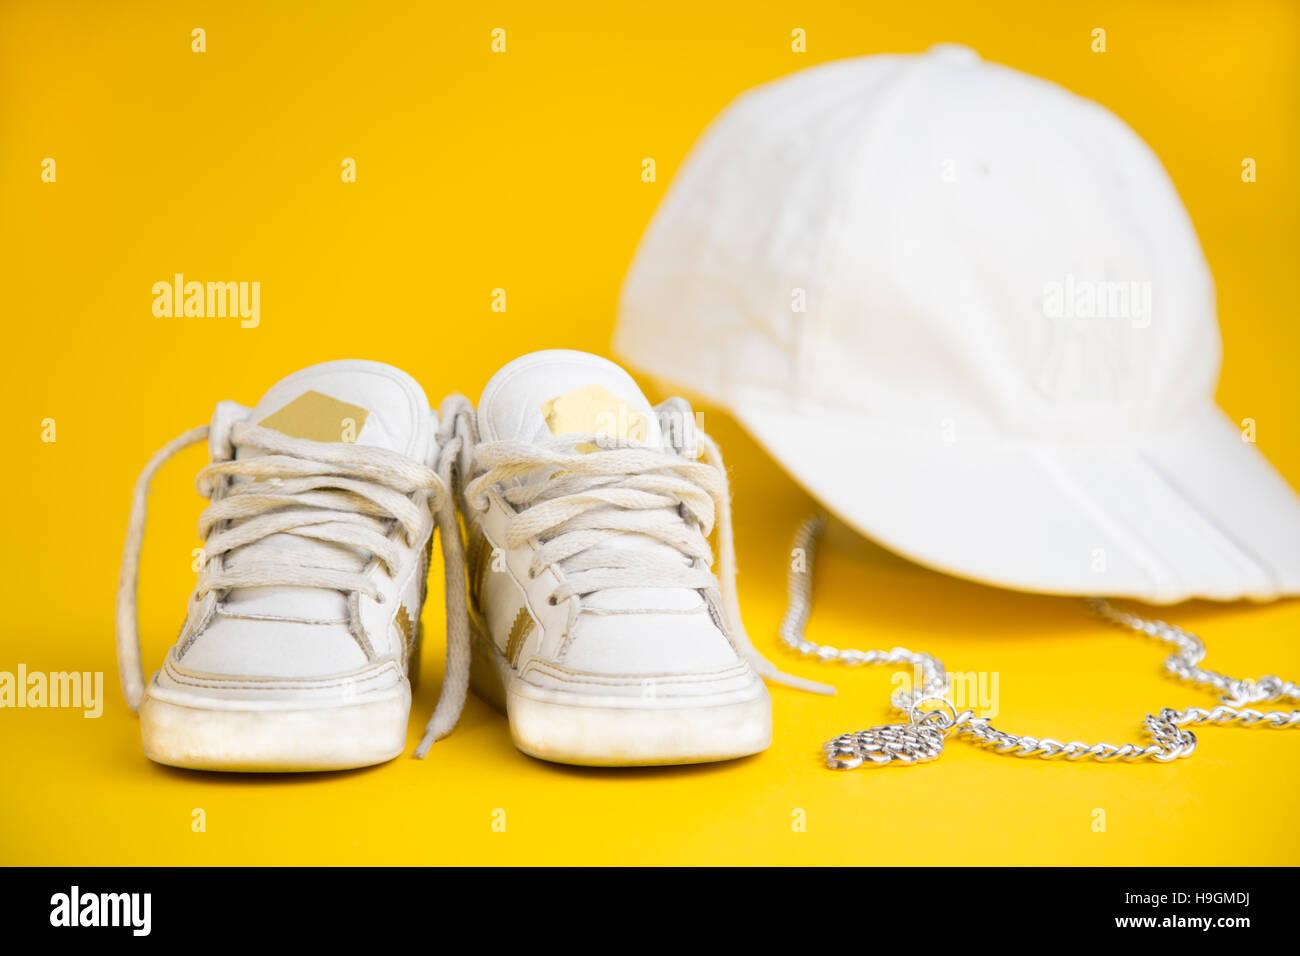 portrait of baby sneakers inspired by the hip hop style - Stock Image